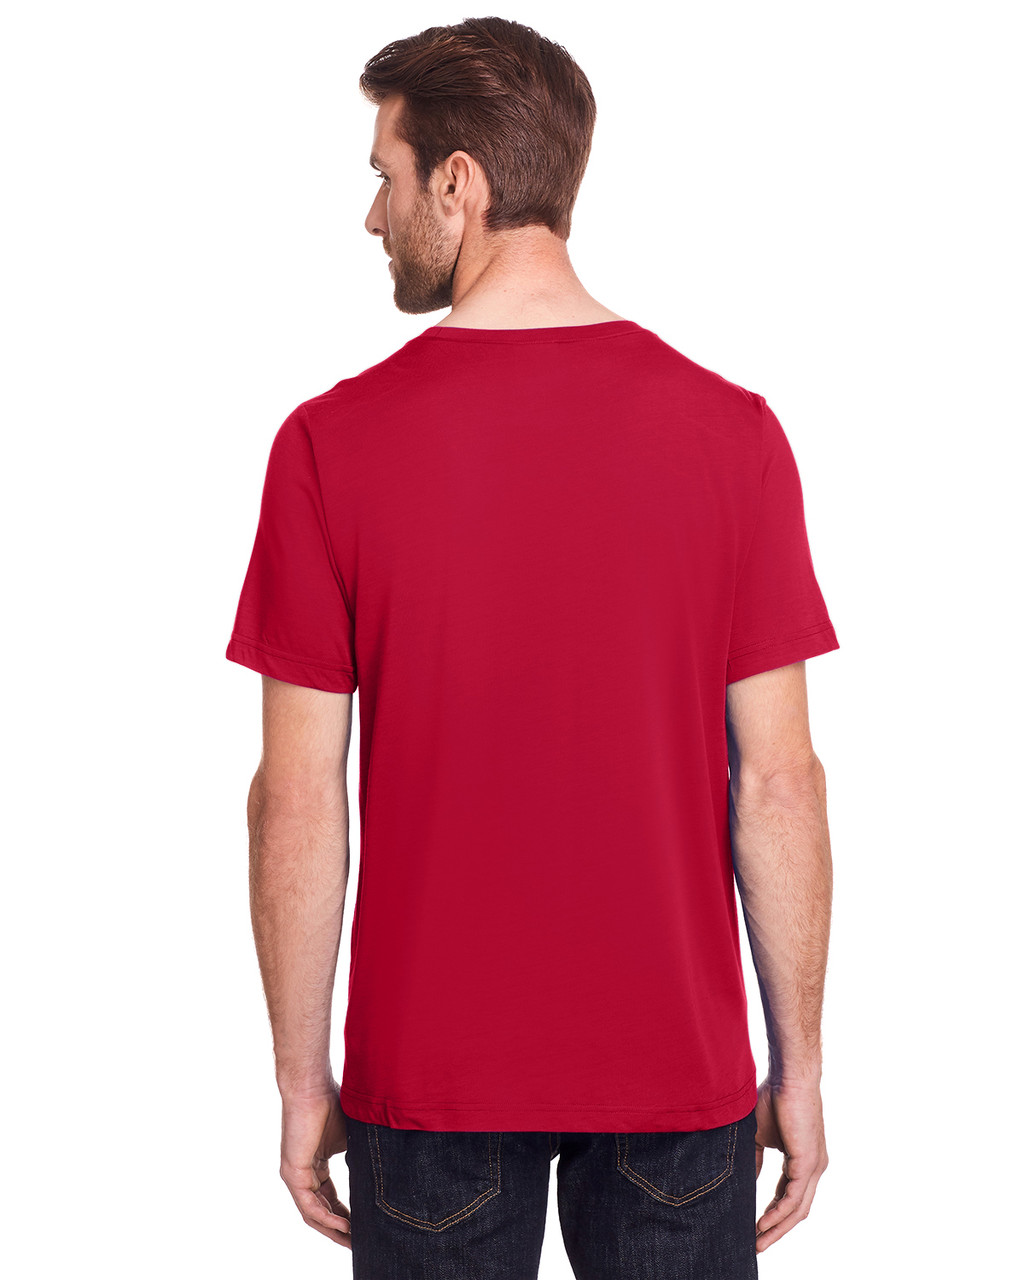 Classic Red - Back, CE111 Core 365 Adult Fusion ChromaSoft Performance T-Shirt | BlankClothing.ca